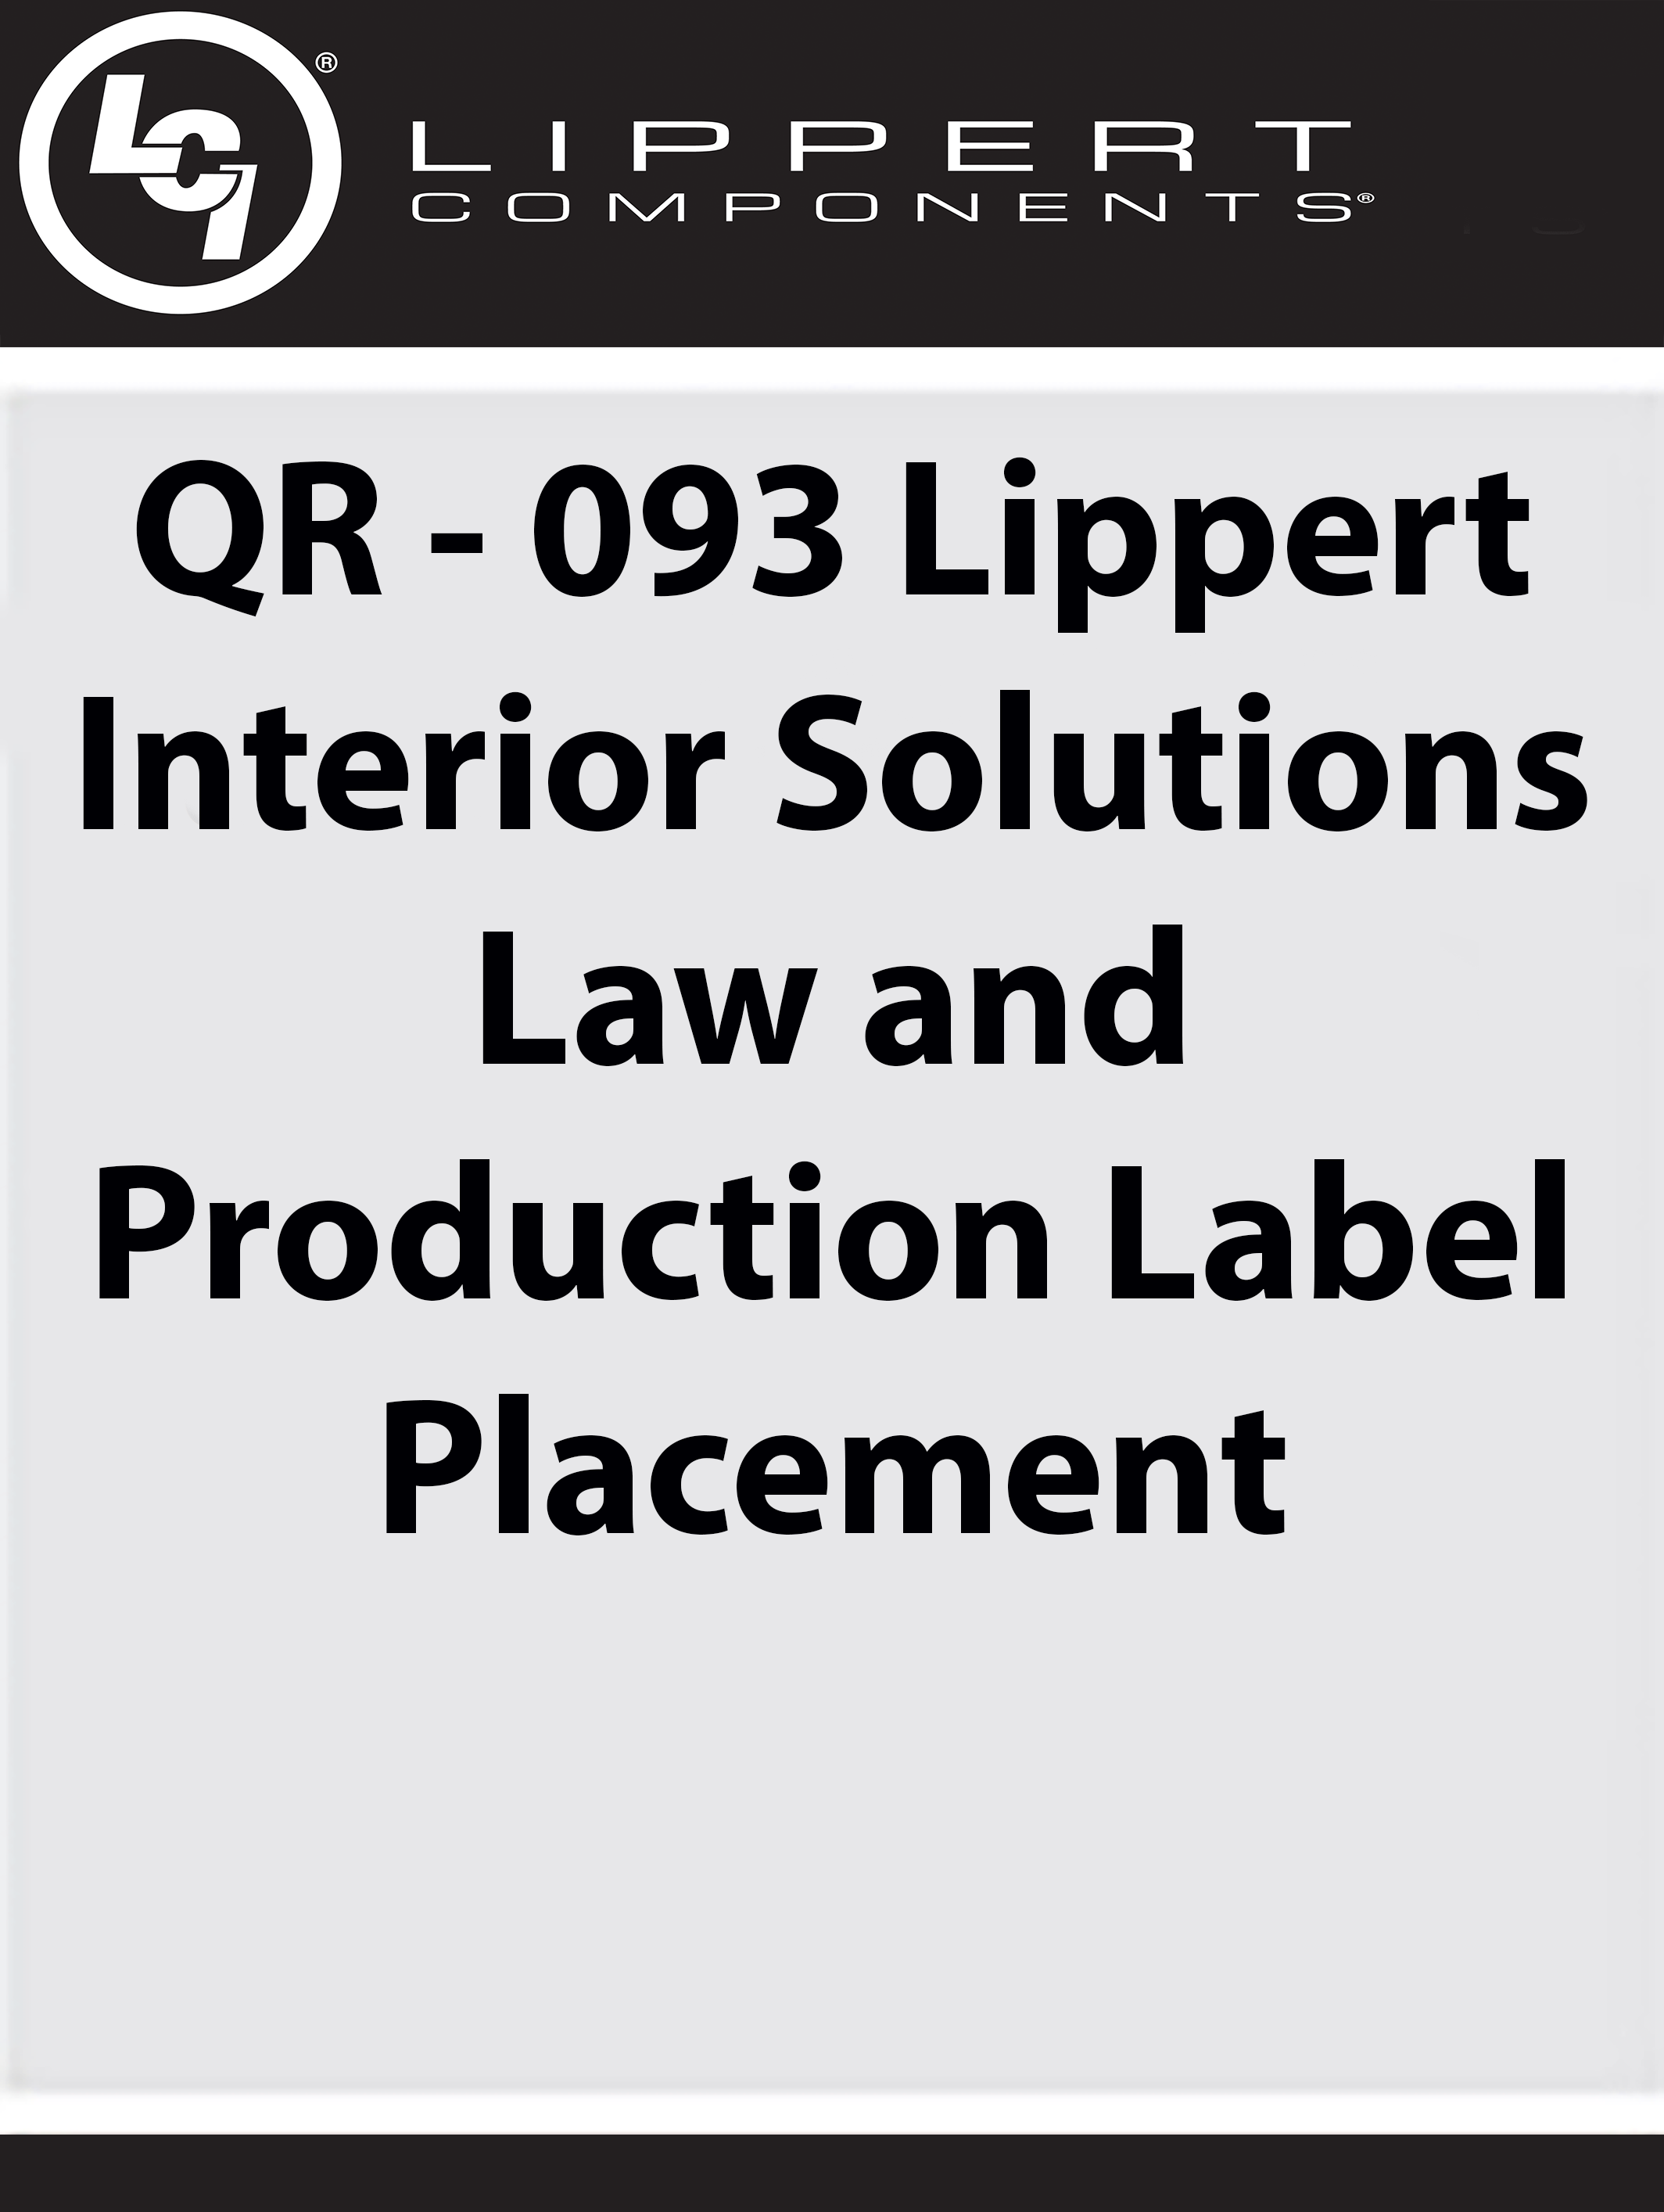 QR - 093: Interiors Law Production Label Placement